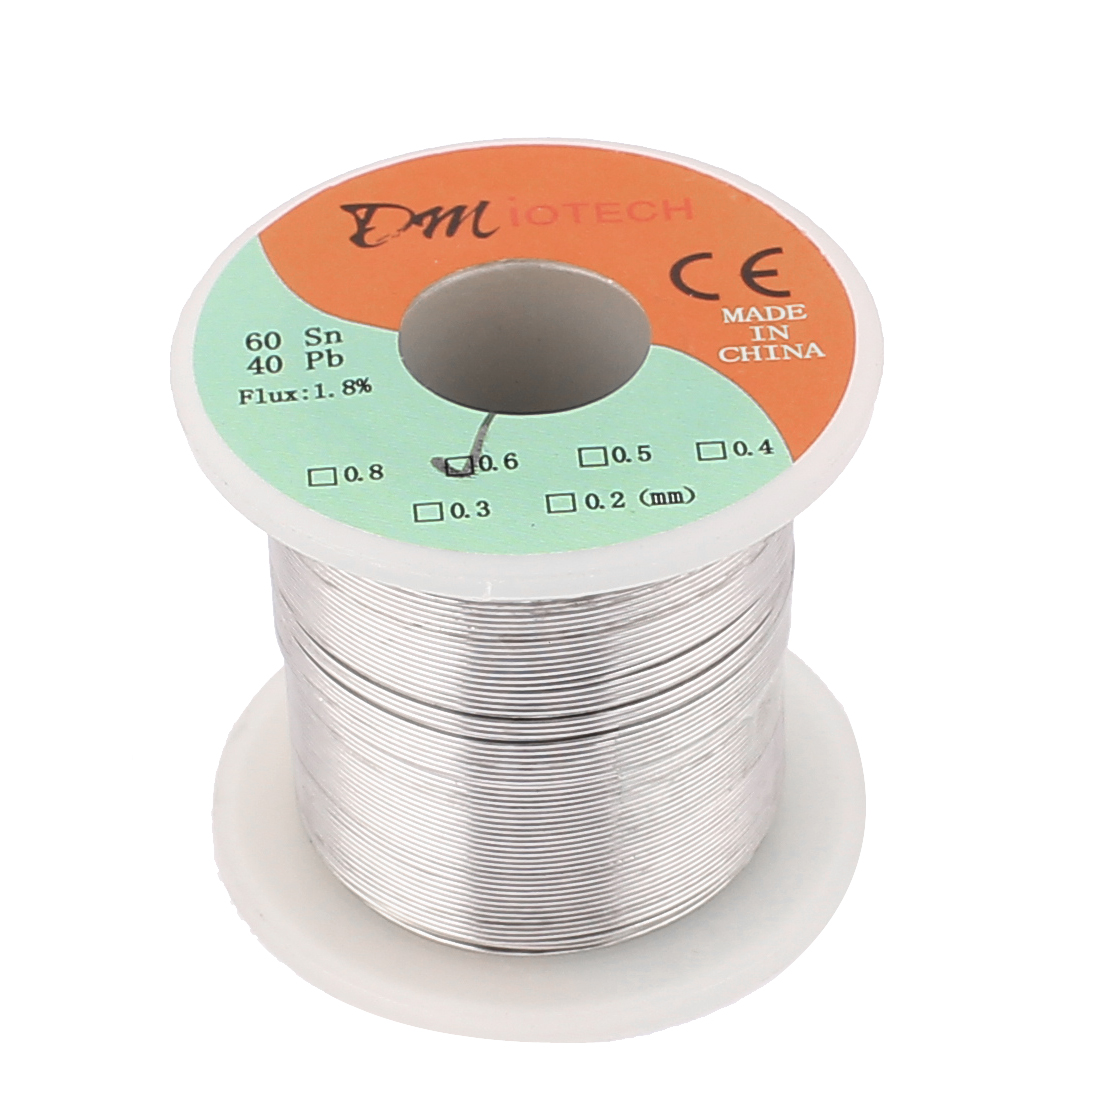 DMiotech 0.6mm 200g 60/40 Tin Lead Roll Solder Soldering Wire Spool Reel